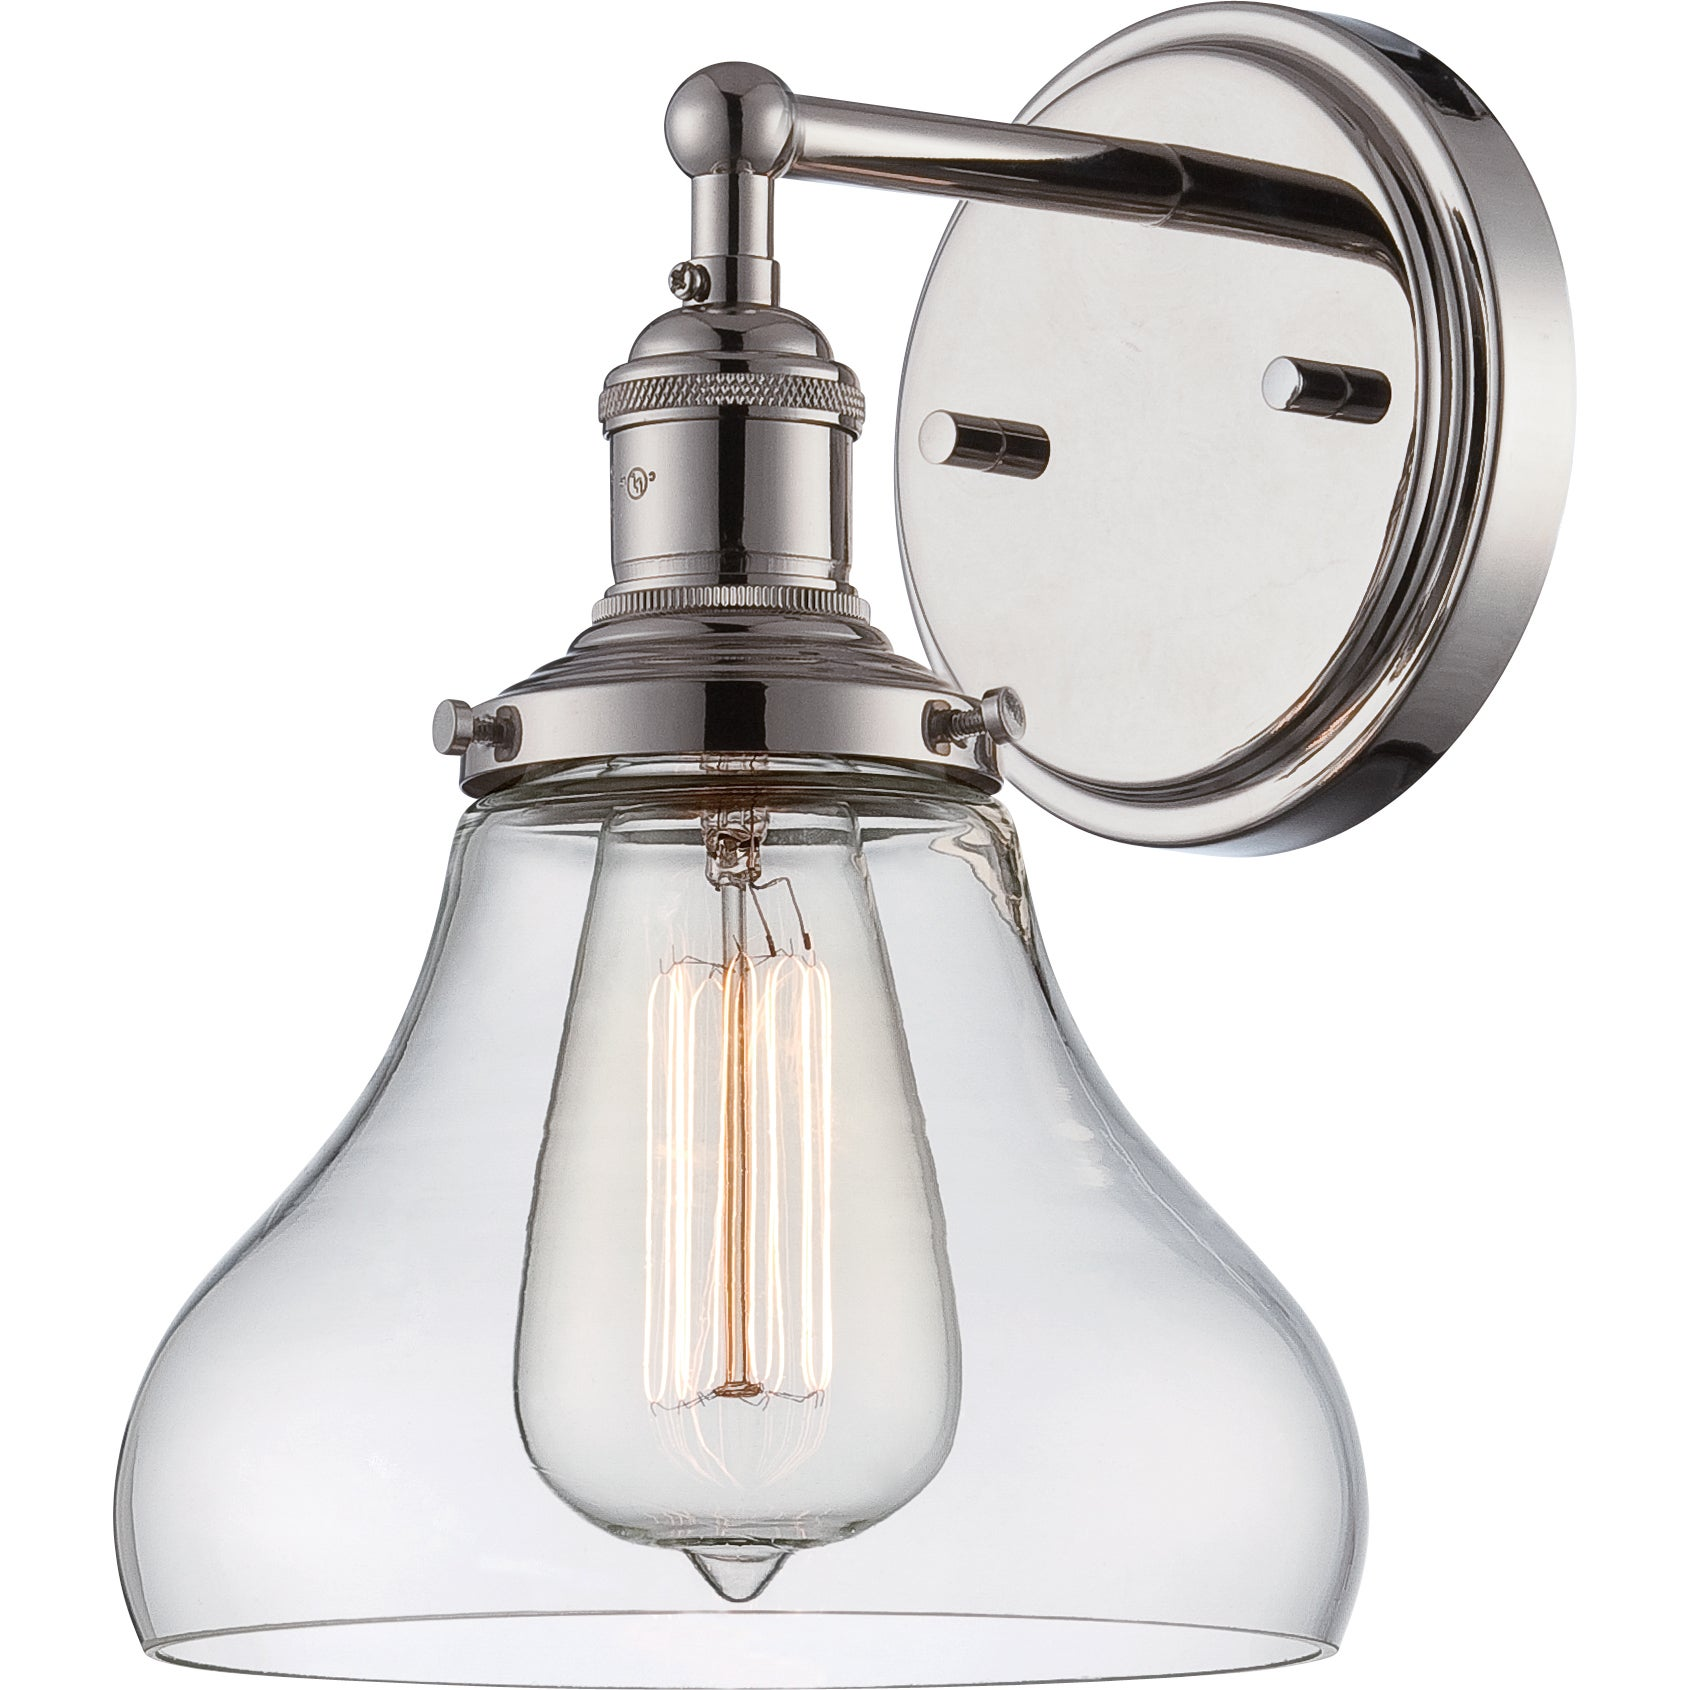 Nuvo vintage 1 light 7 inch wall sconce free shipping today advertisement amipublicfo Image collections